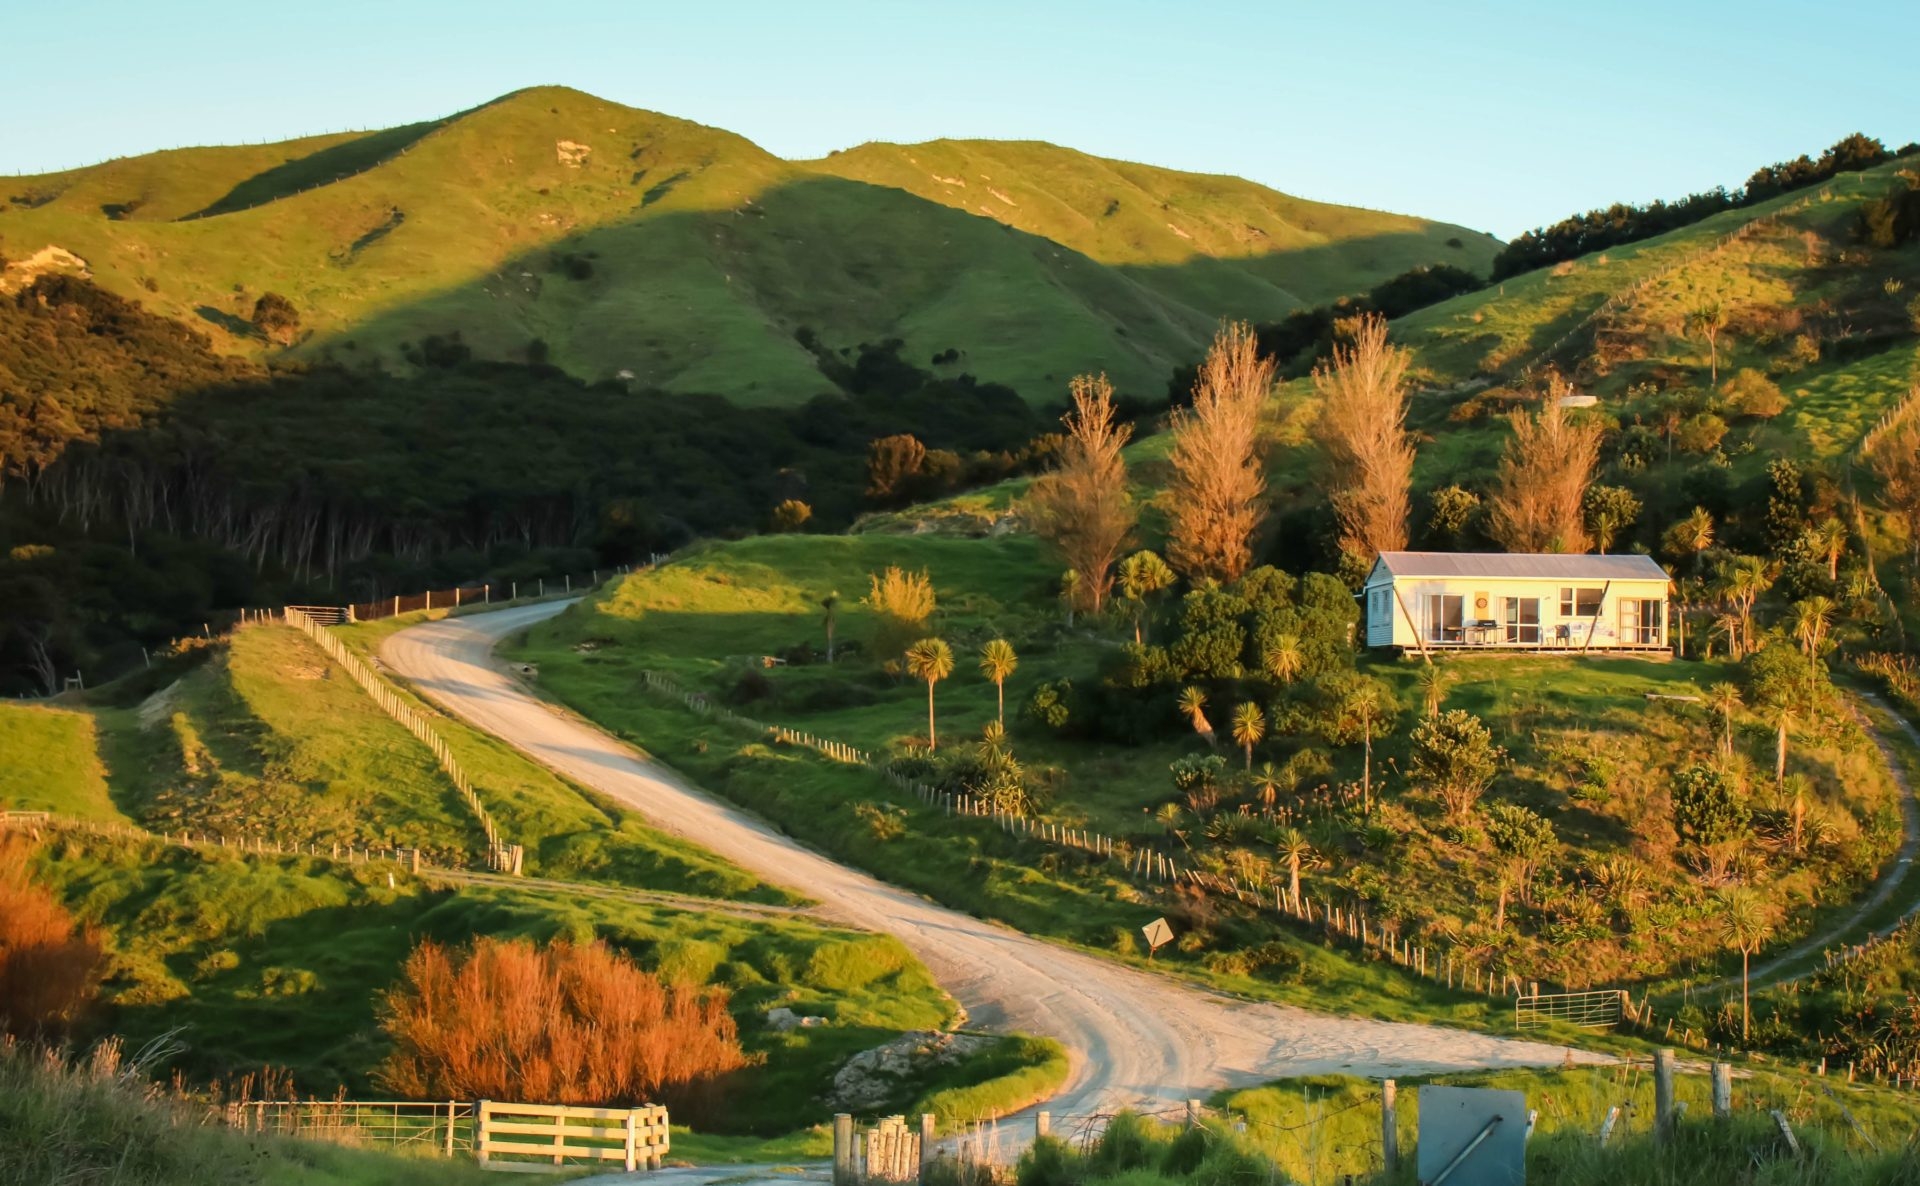 Gisborne claims to be the first city in the world to greet the sun every morning – and it also has some of the cheapest homes in New Zealand.